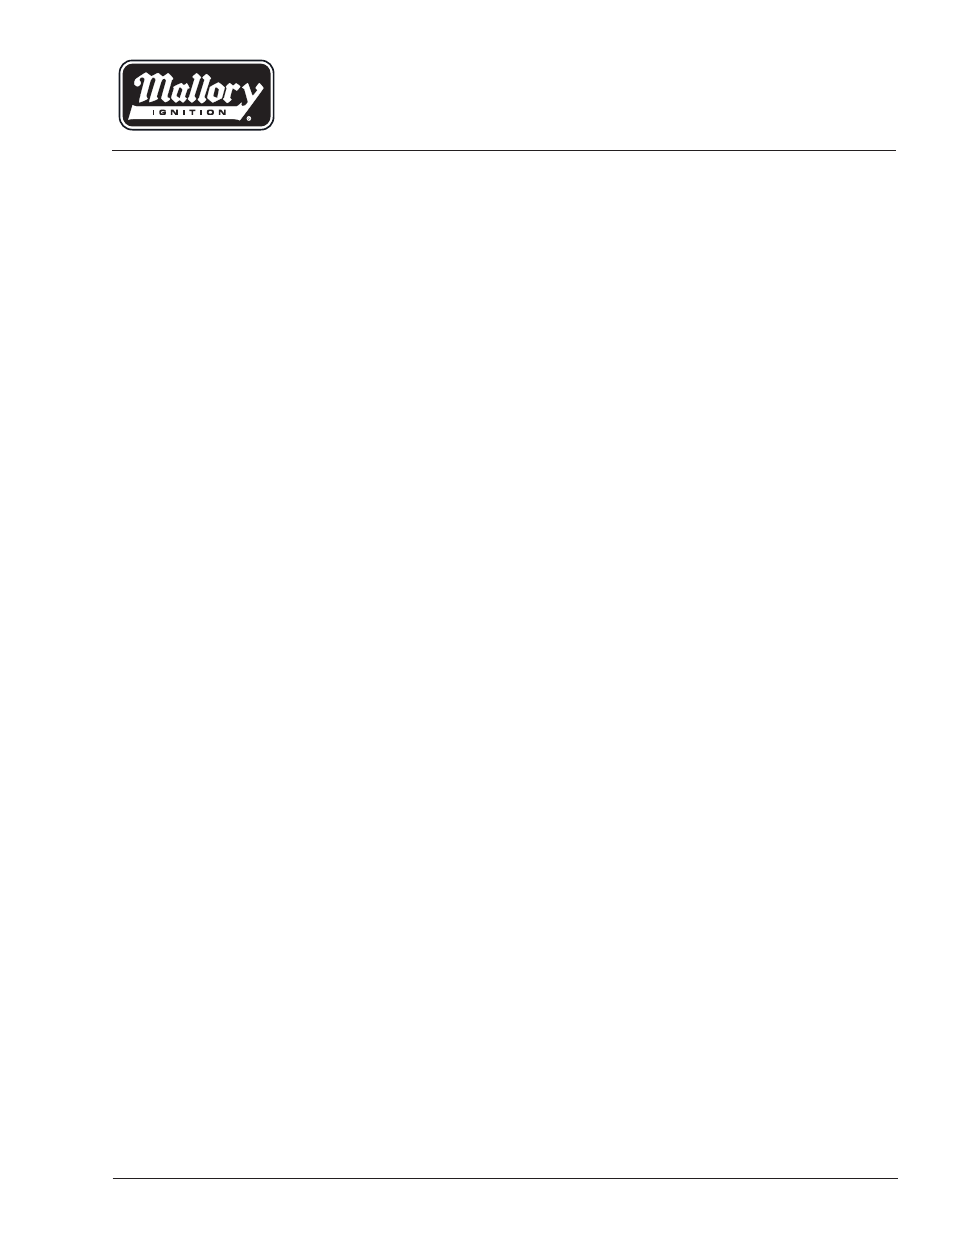 Mallory Ignition Mallory E-SPARK CONVERSION 61002M User Manual | 4 pages